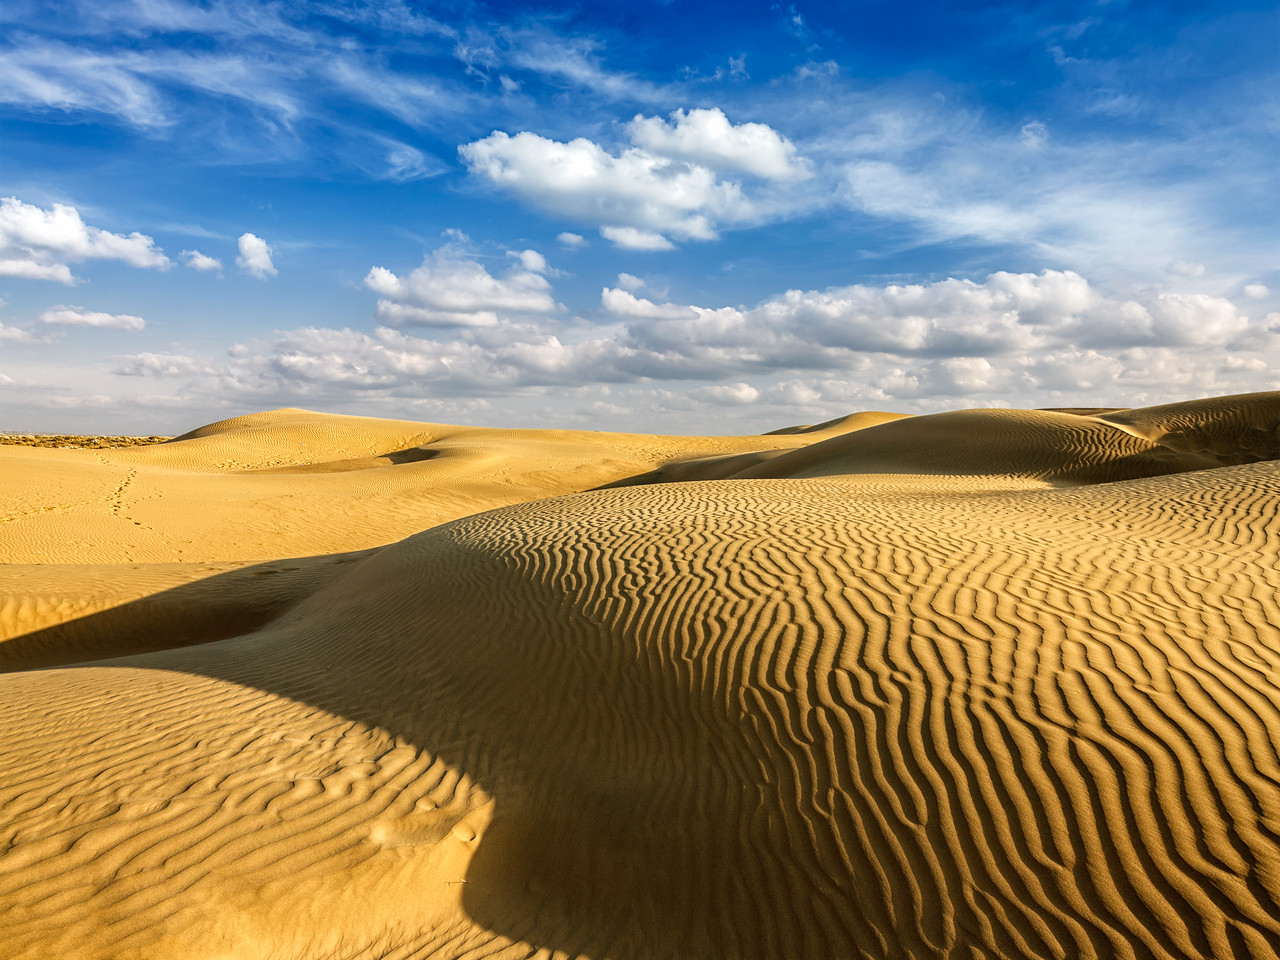 Sam Sand dunes in Thar Desert. Rajasthan, India